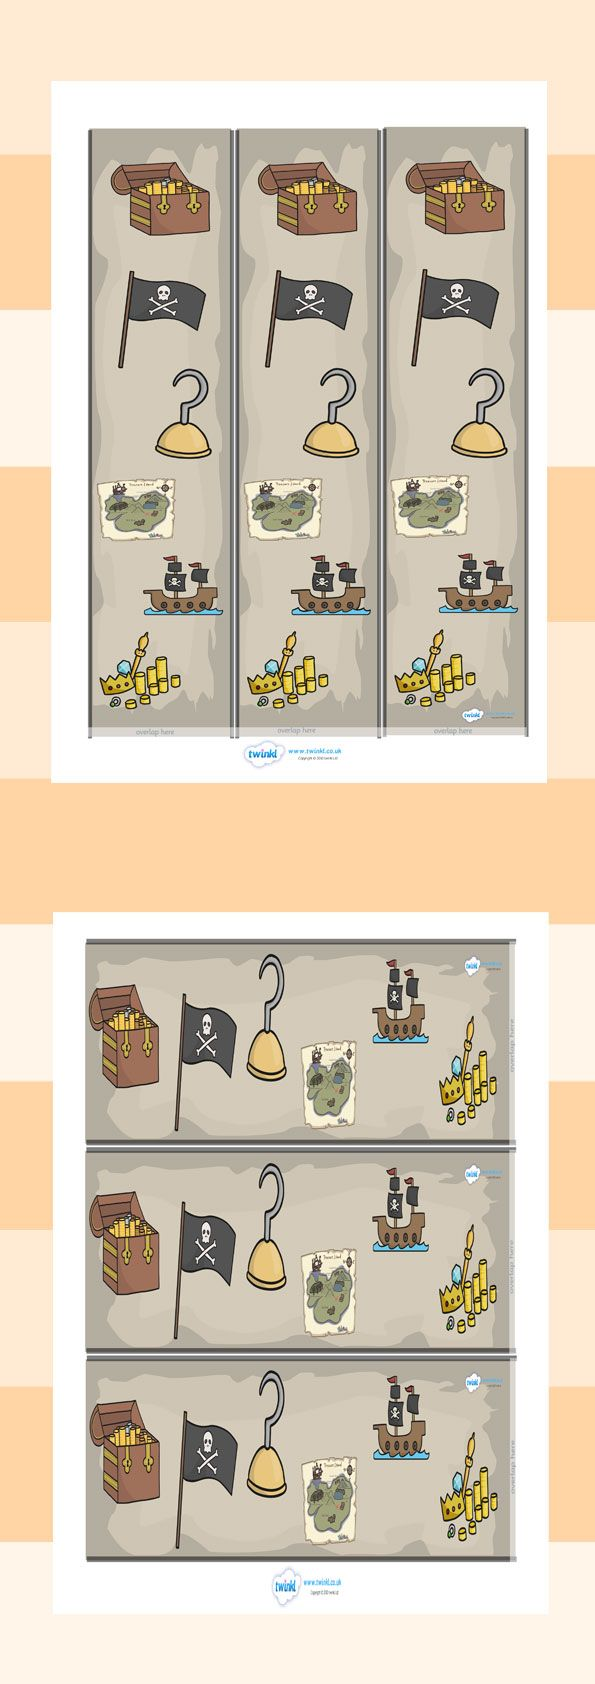 Twinkl Resources >> Pirates Display Borders >> Thousands of printable primary teaching resources for EYFS, KS1, KS2 and beyond! pirates, display border, classroom border, border, pirate, pirates, pirate themed, topic, cutting, fine motor skills, activity, treasure, ship, jolly roger, ship, island, ocean,